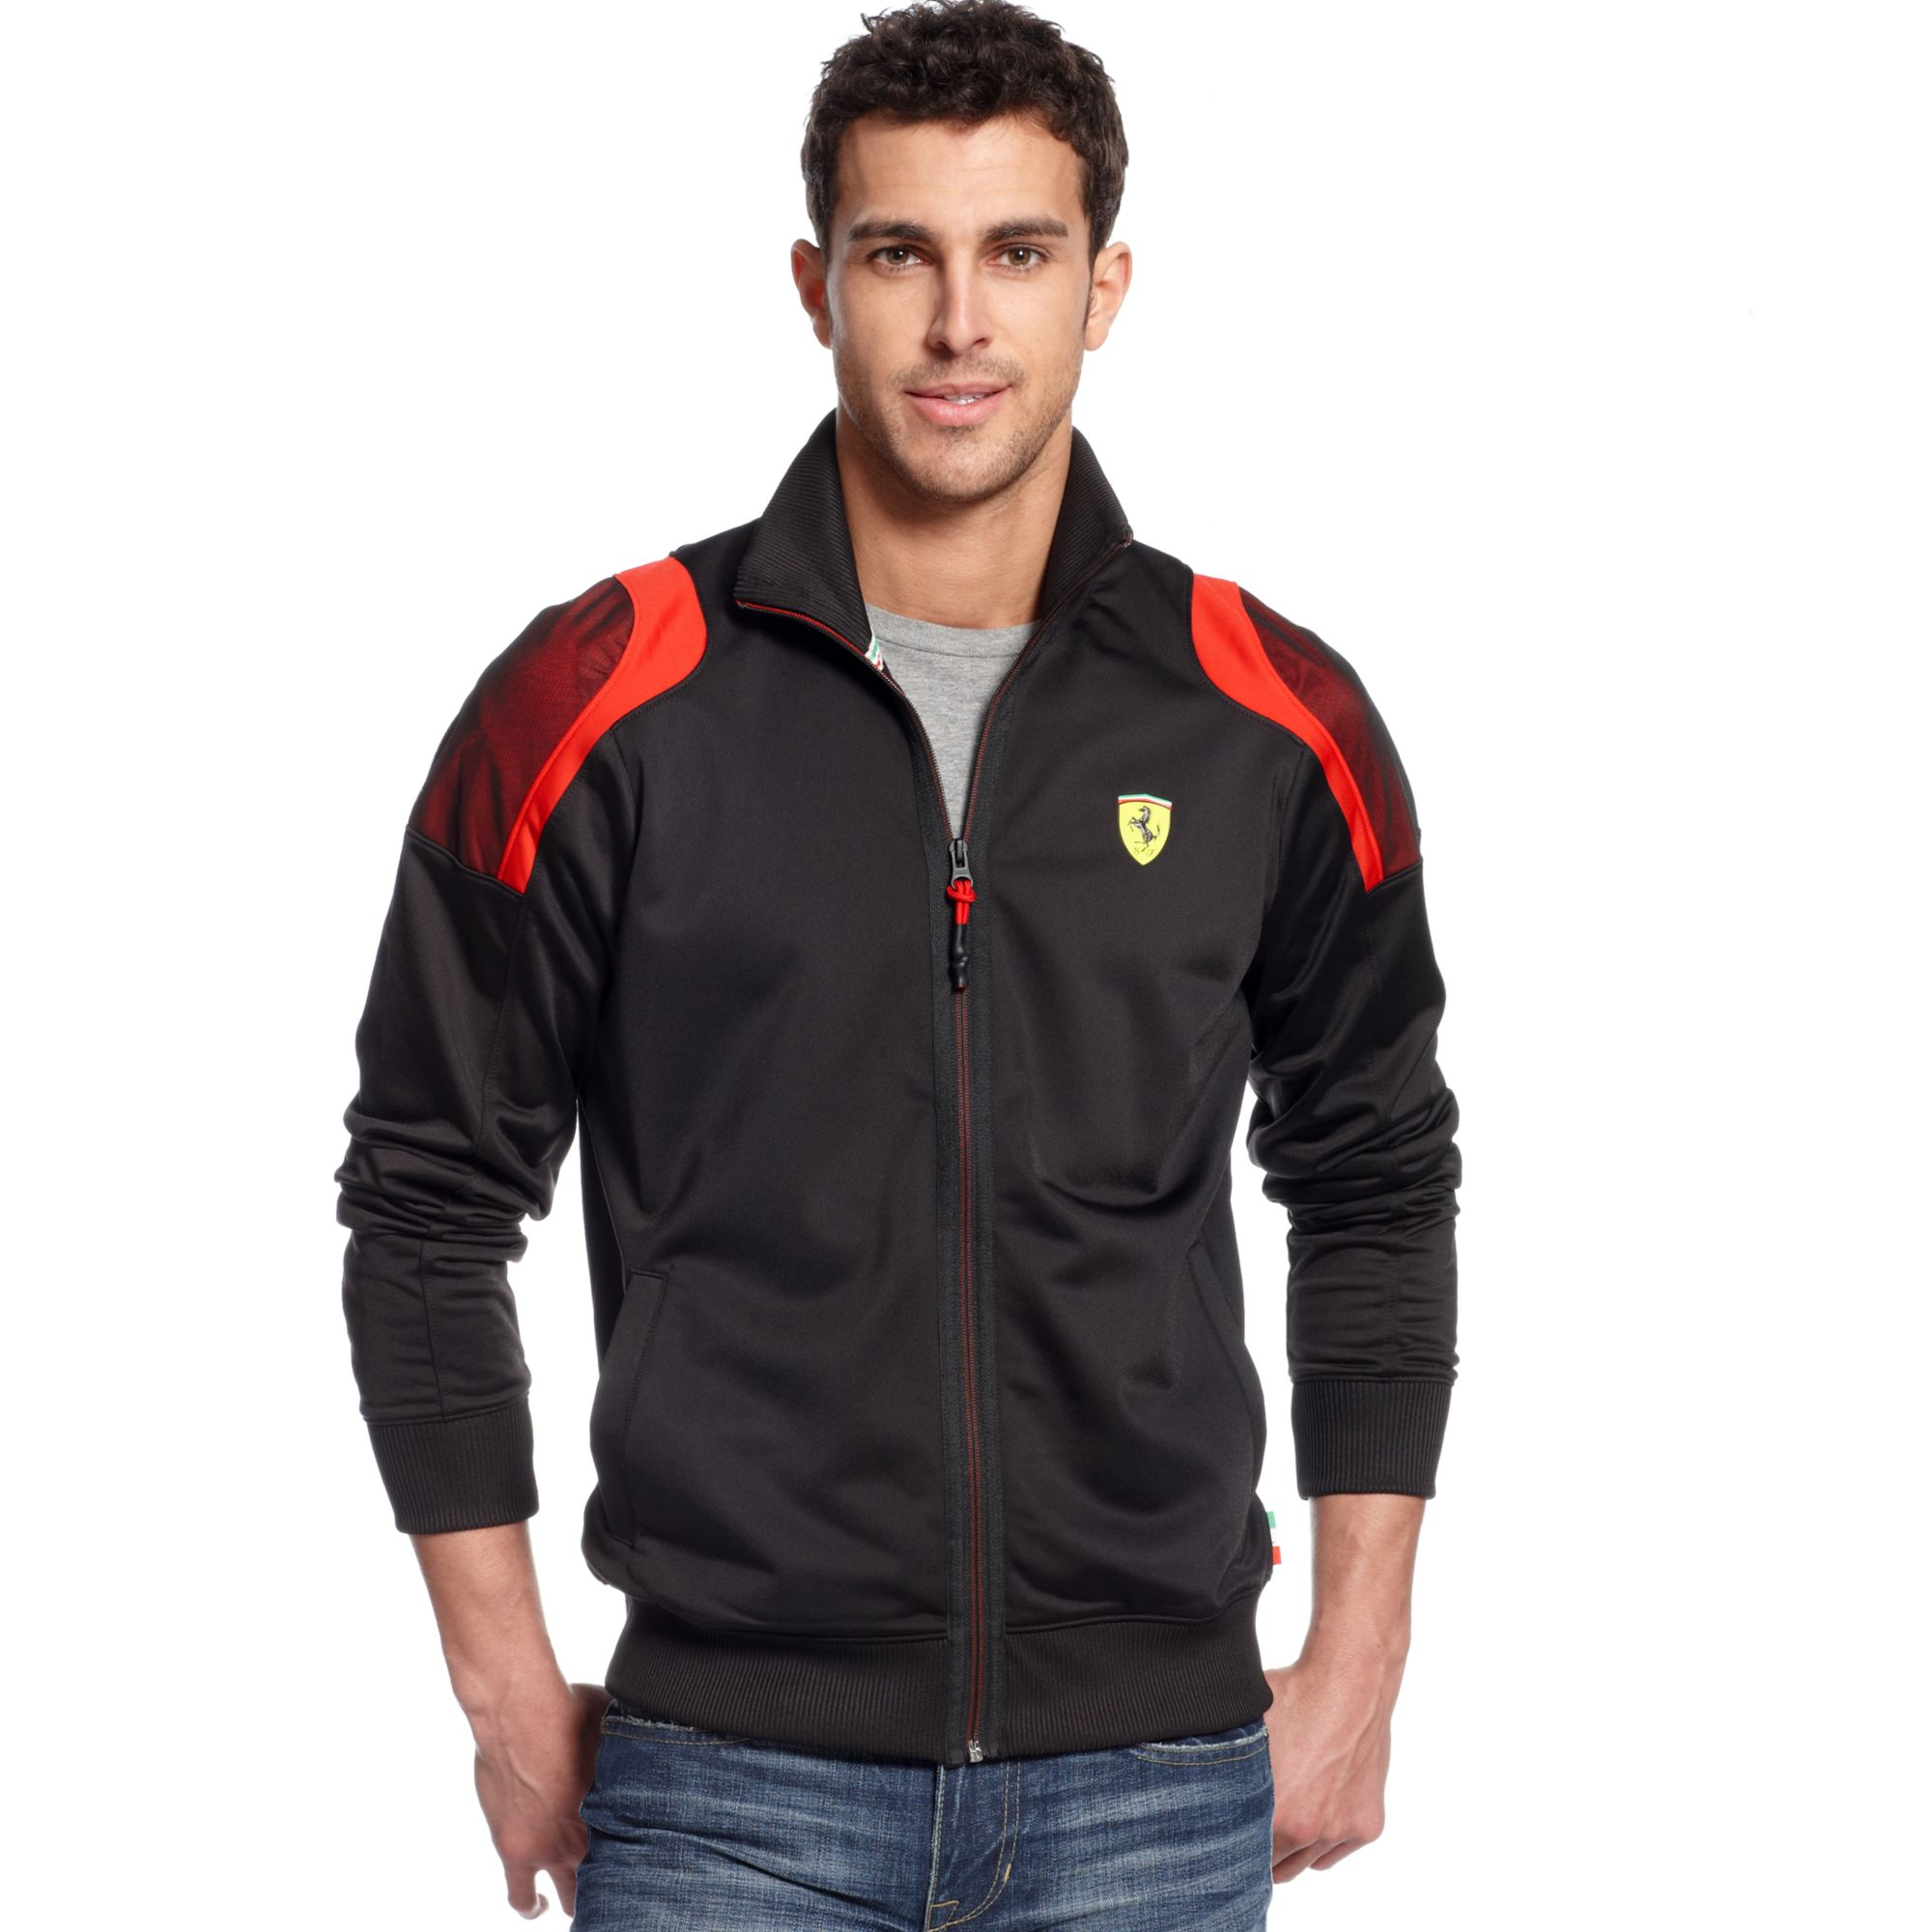 Puma Men S Ferrari Track Jacket Cheaper Than Retail Price Buy Clothing Accessories And Lifestyle Products For Women Men